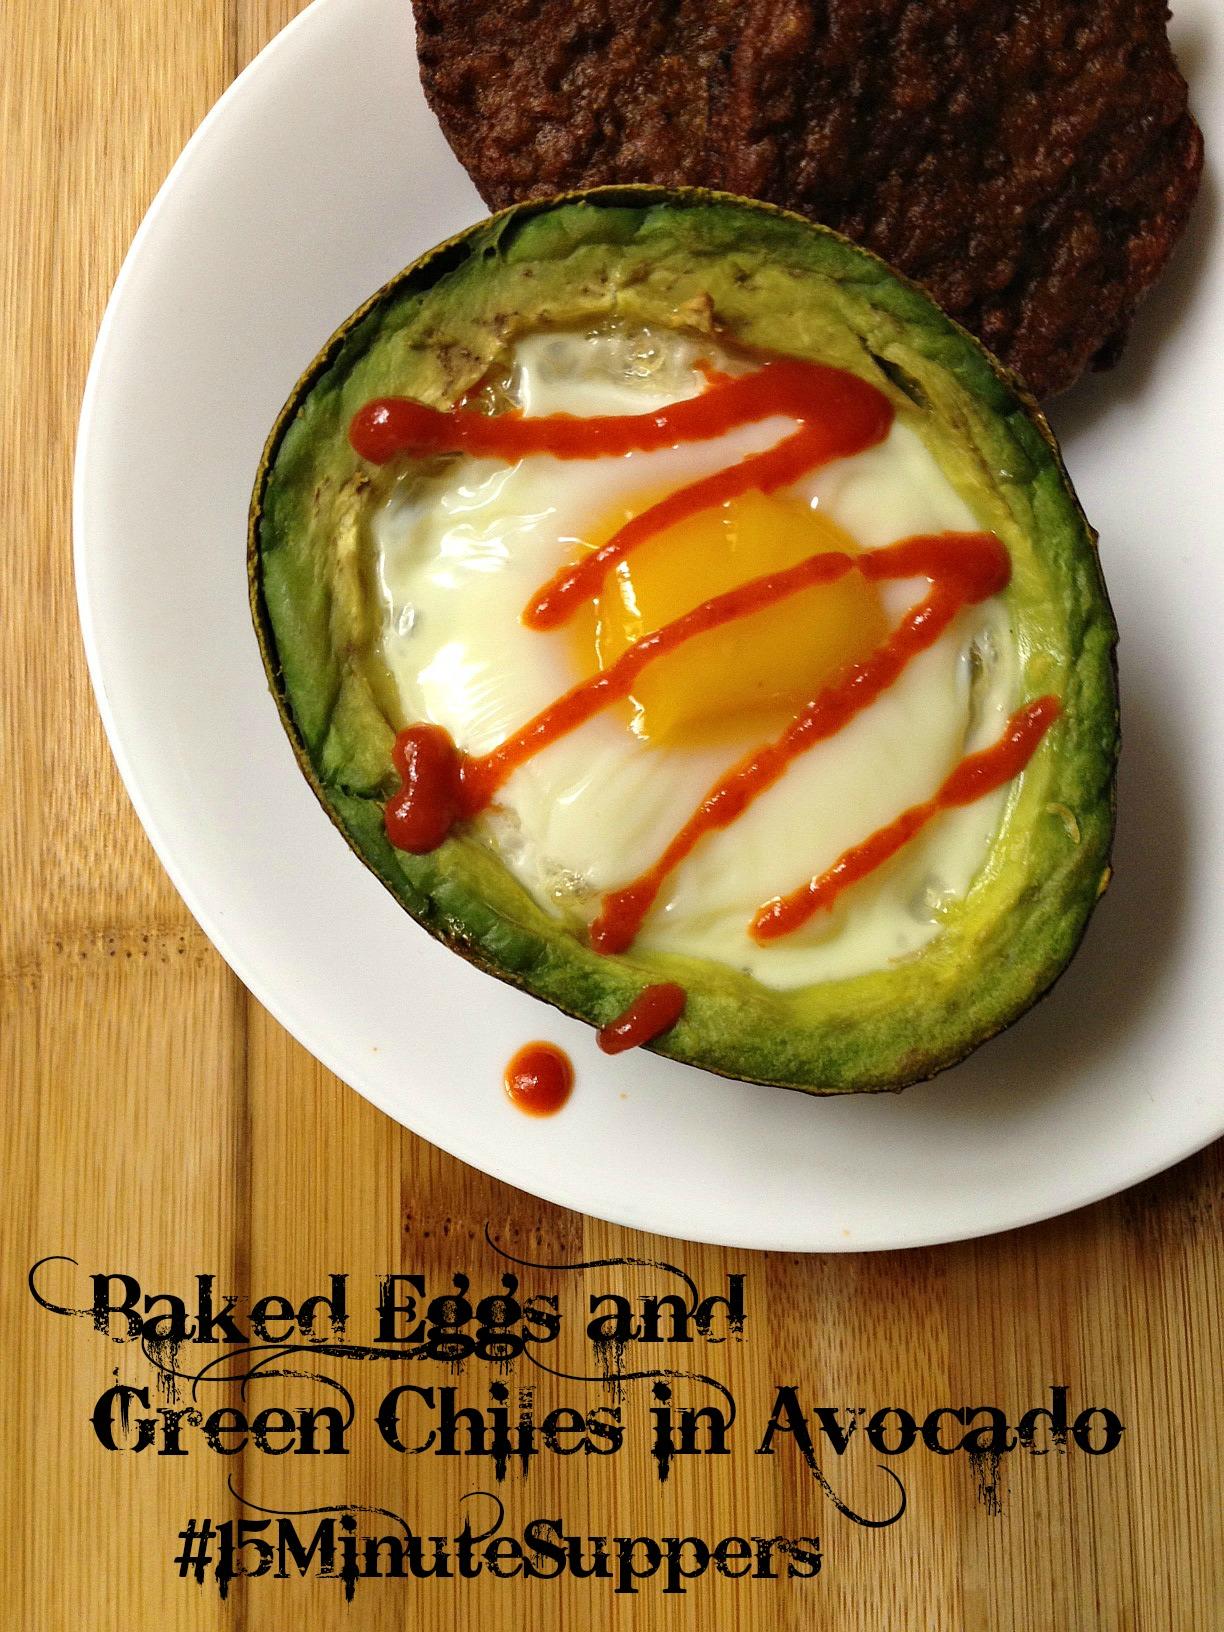 Baked Eggs and Green Chiles in Avocado - East Valley Mom Guide